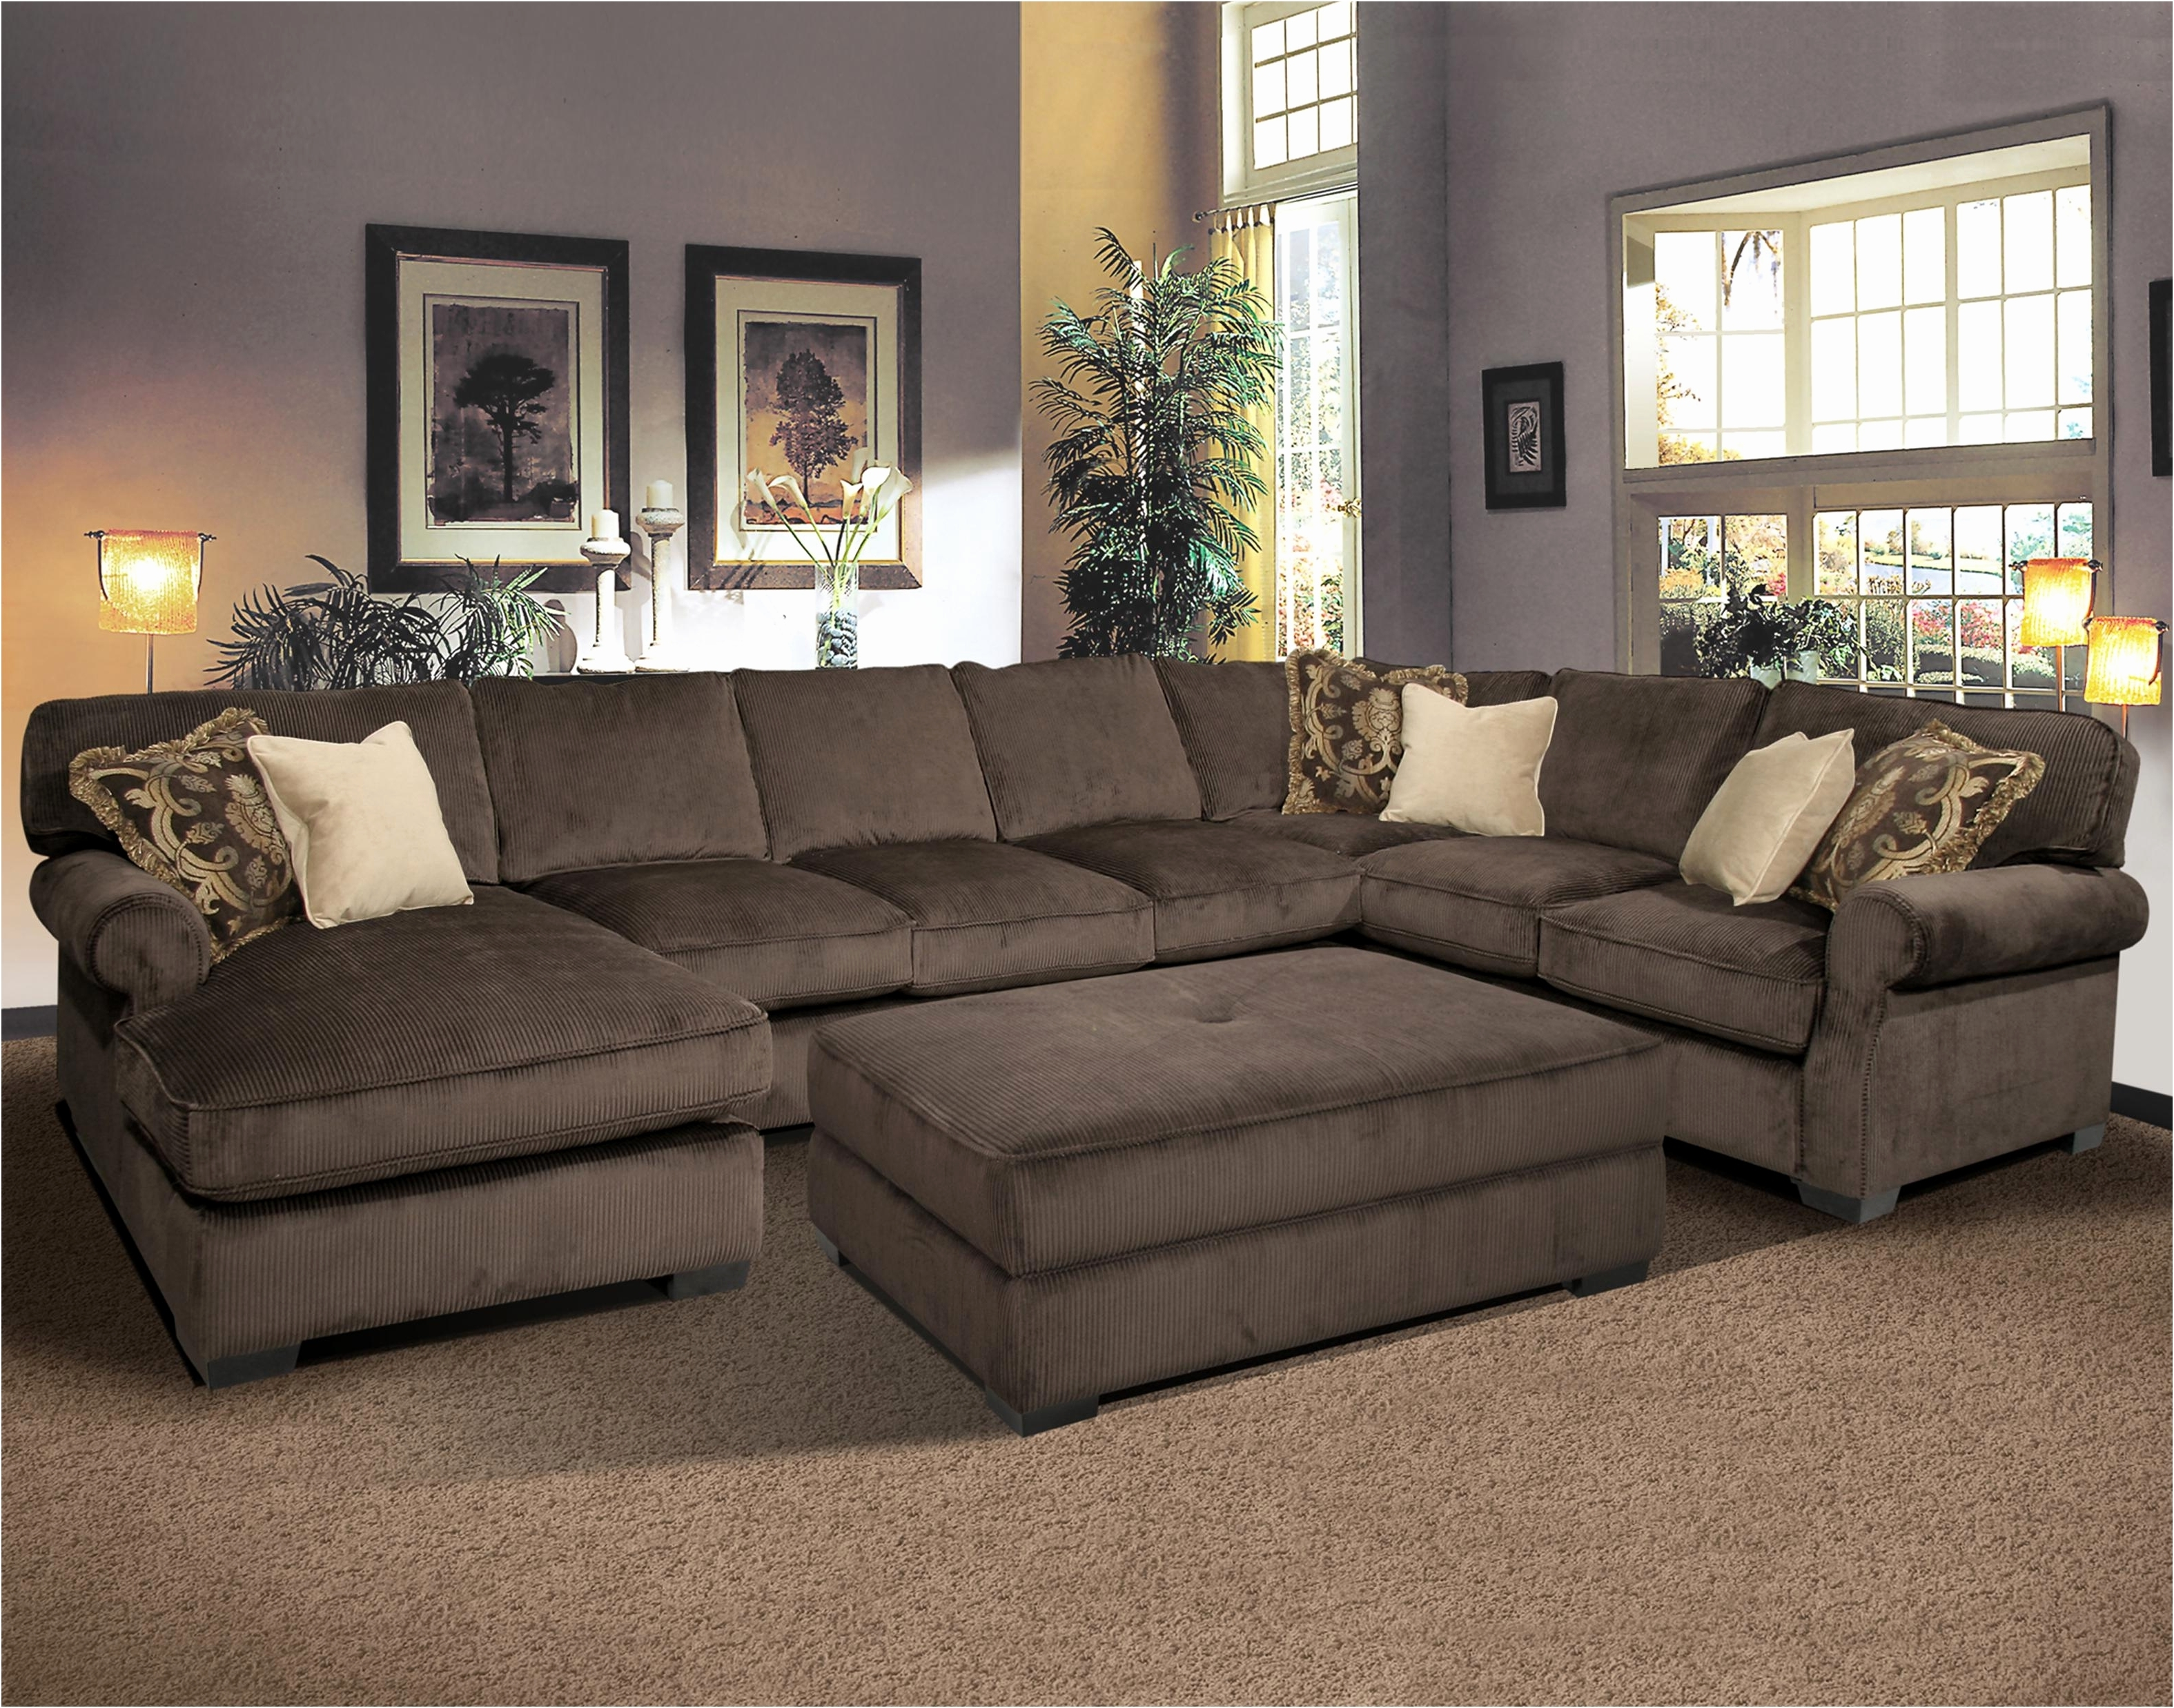 Best Of High Back Sectional Sofas Best Of – Sofa Furnitures | Sofa With Regard To Sectional Sofas With High Backs (Image 2 of 10)